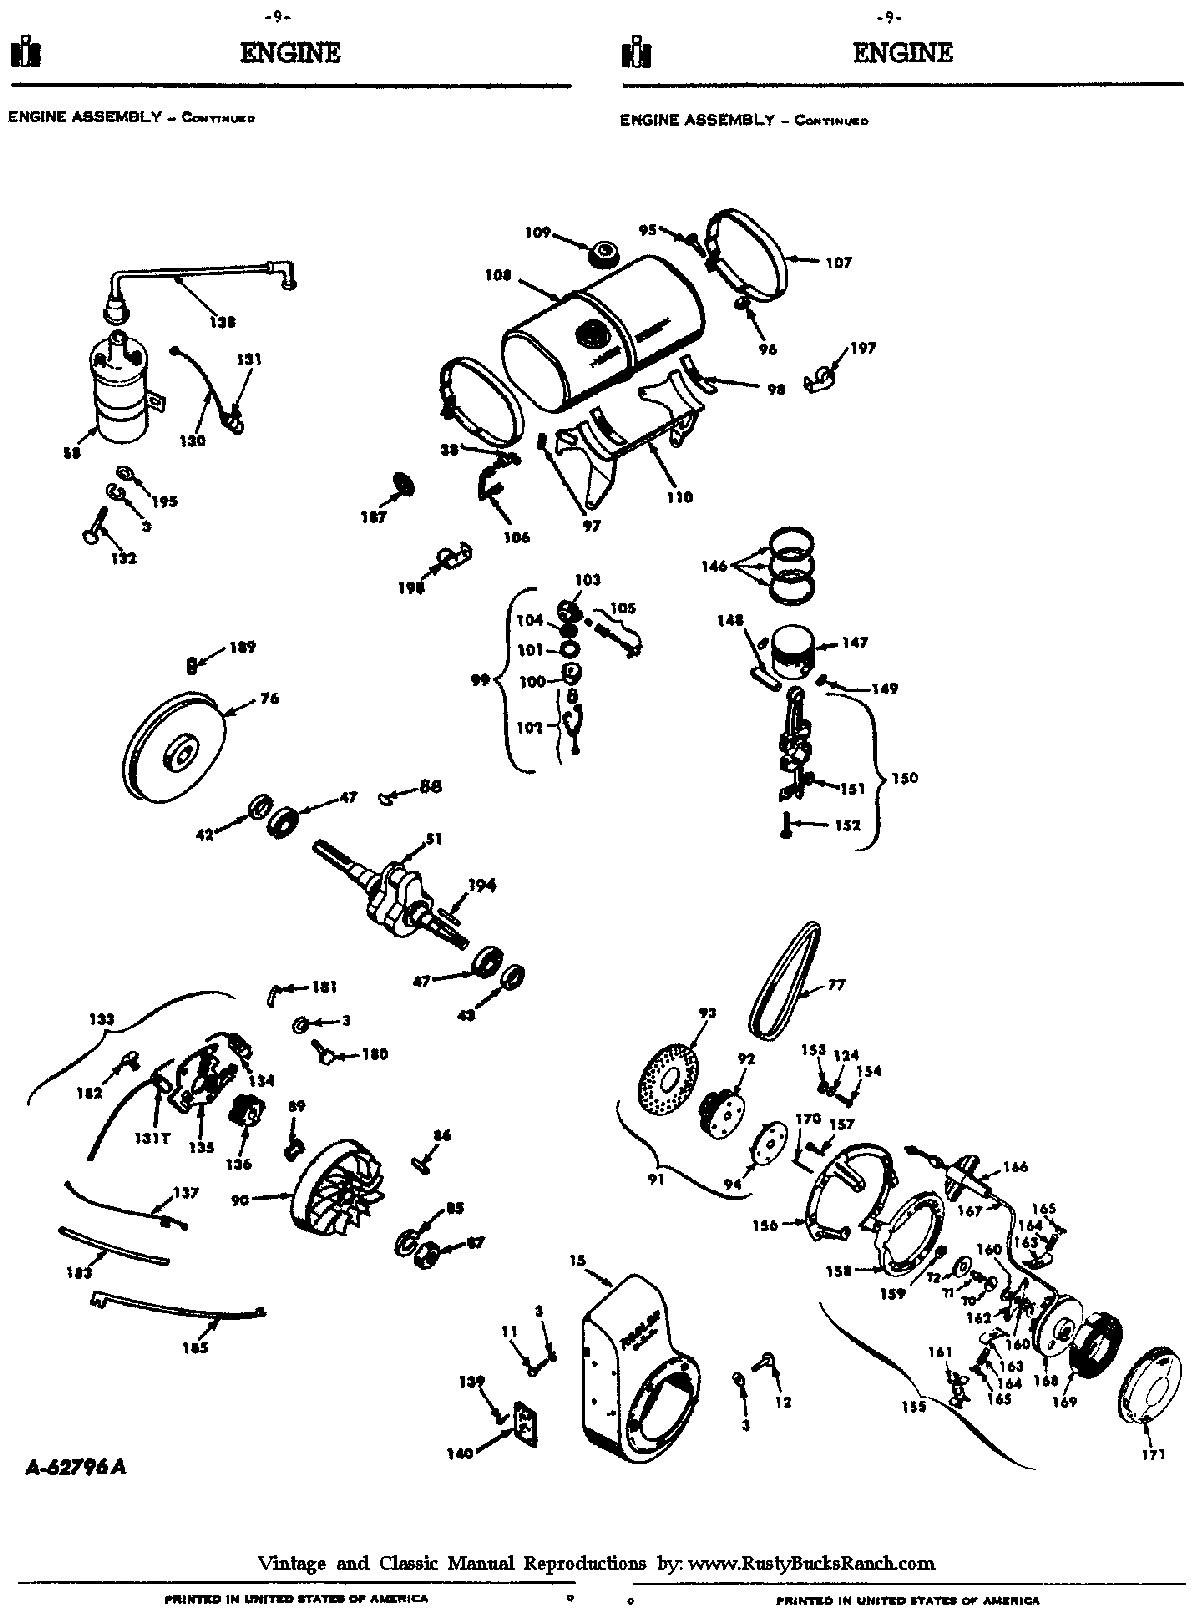 Cub Cadet Lt1042 Parts Diagram Rusty Bucks Ranch Cub Cadet Manuals Index Of Cub Cadet Lt1042 Parts Diagram